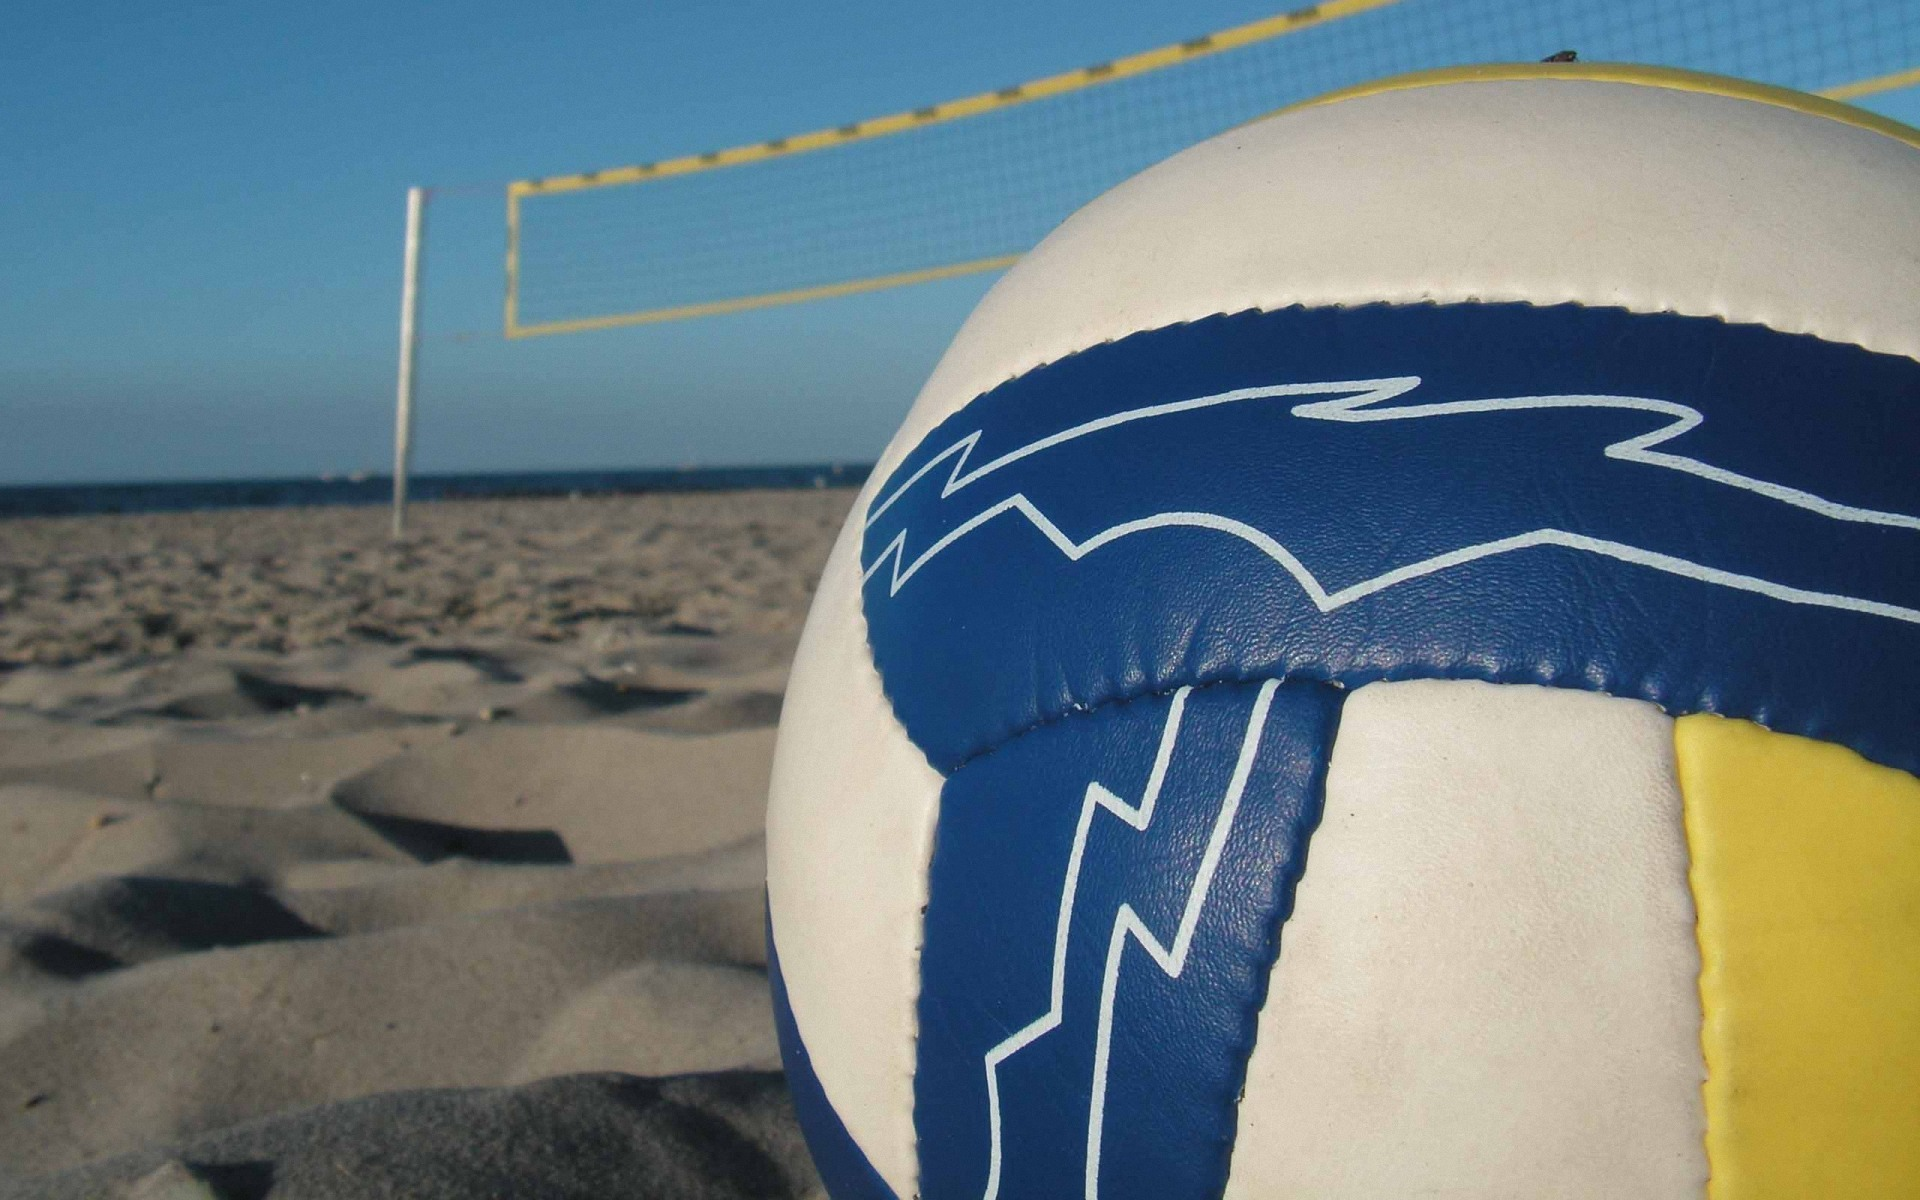 19,593 volleyball stock images are available royalty-free.